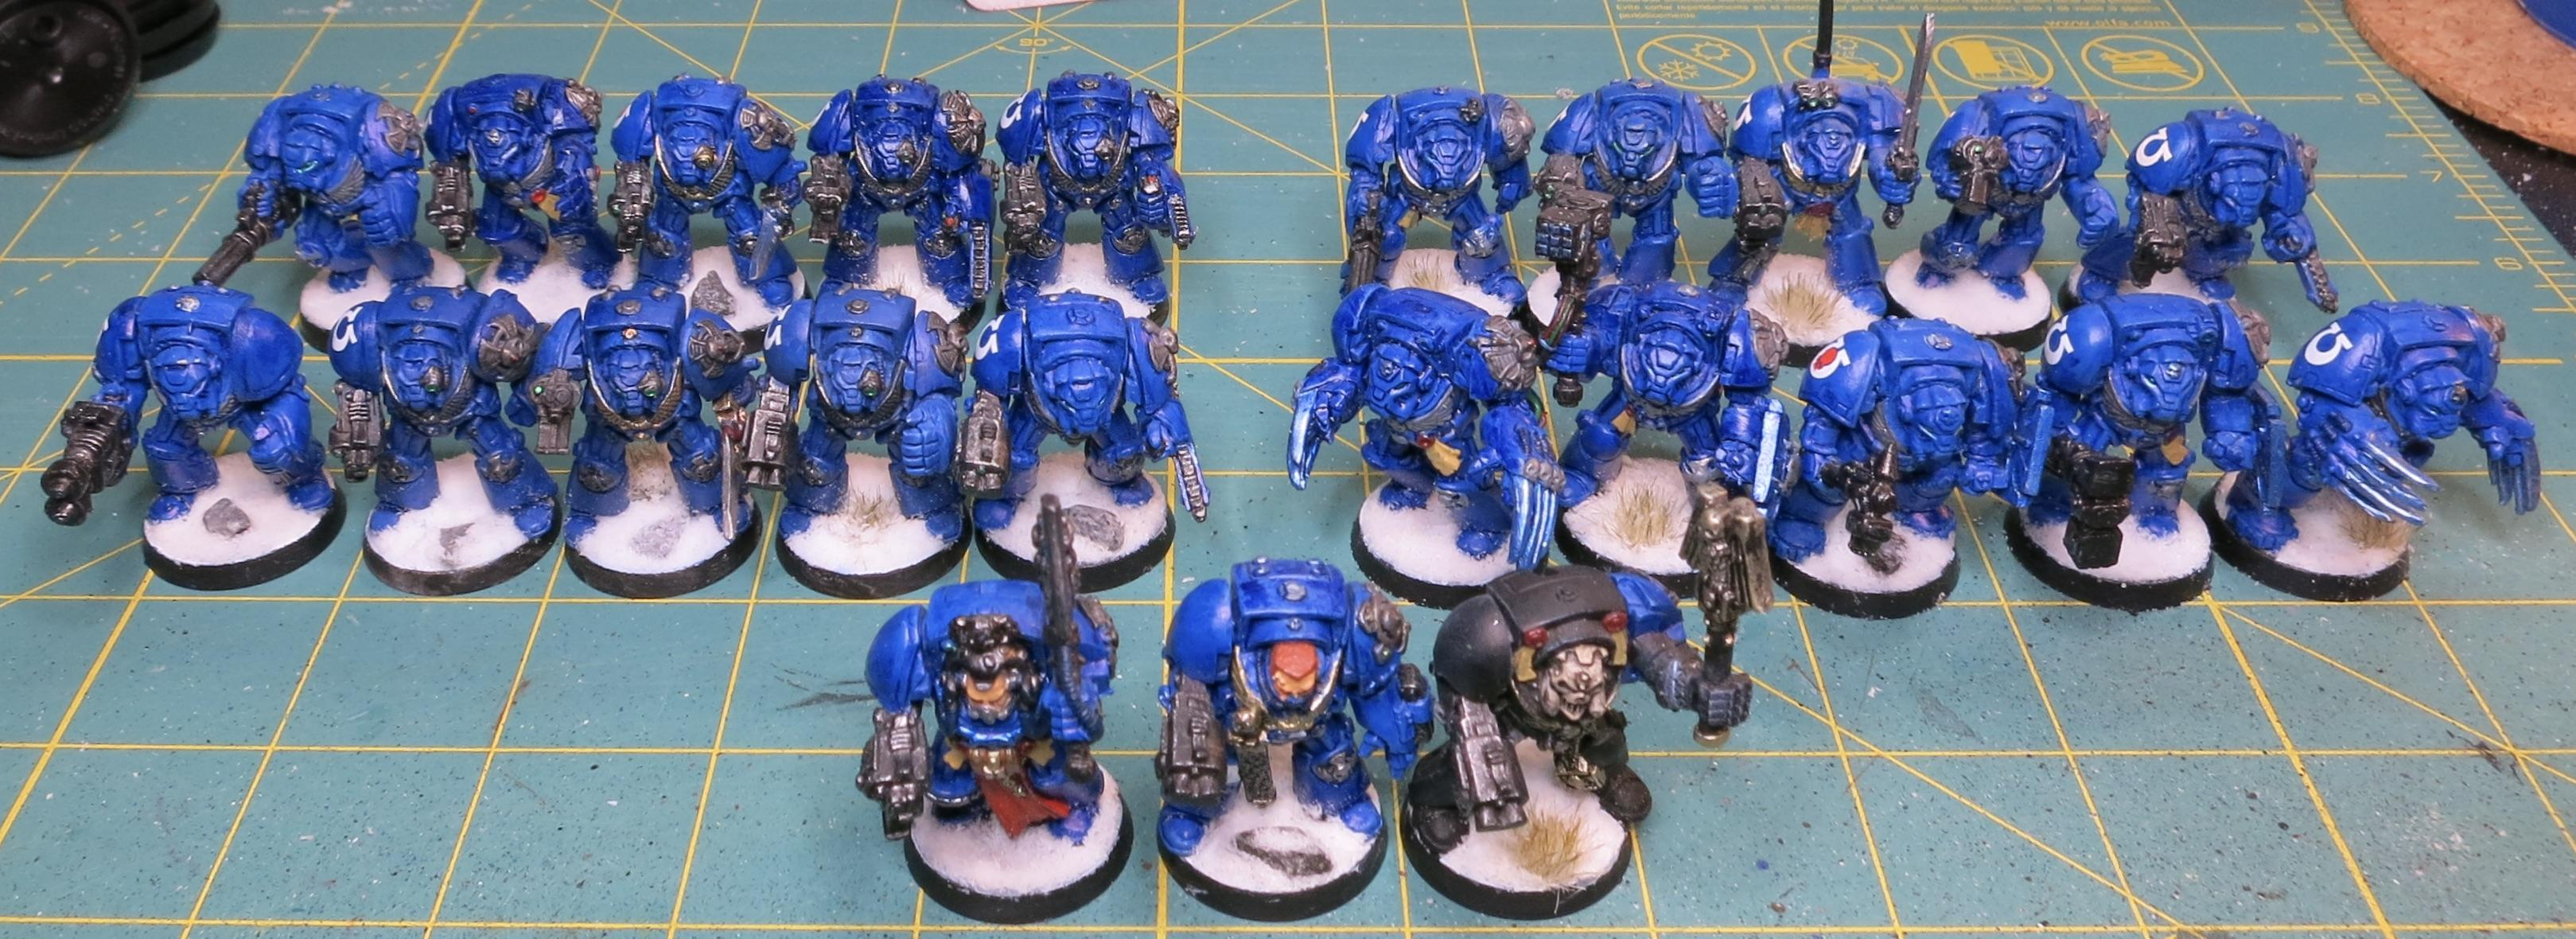 2nd Edition, Chaplain, First Company, Librarian, Space Marines, Terminator Armor, Ultramarines